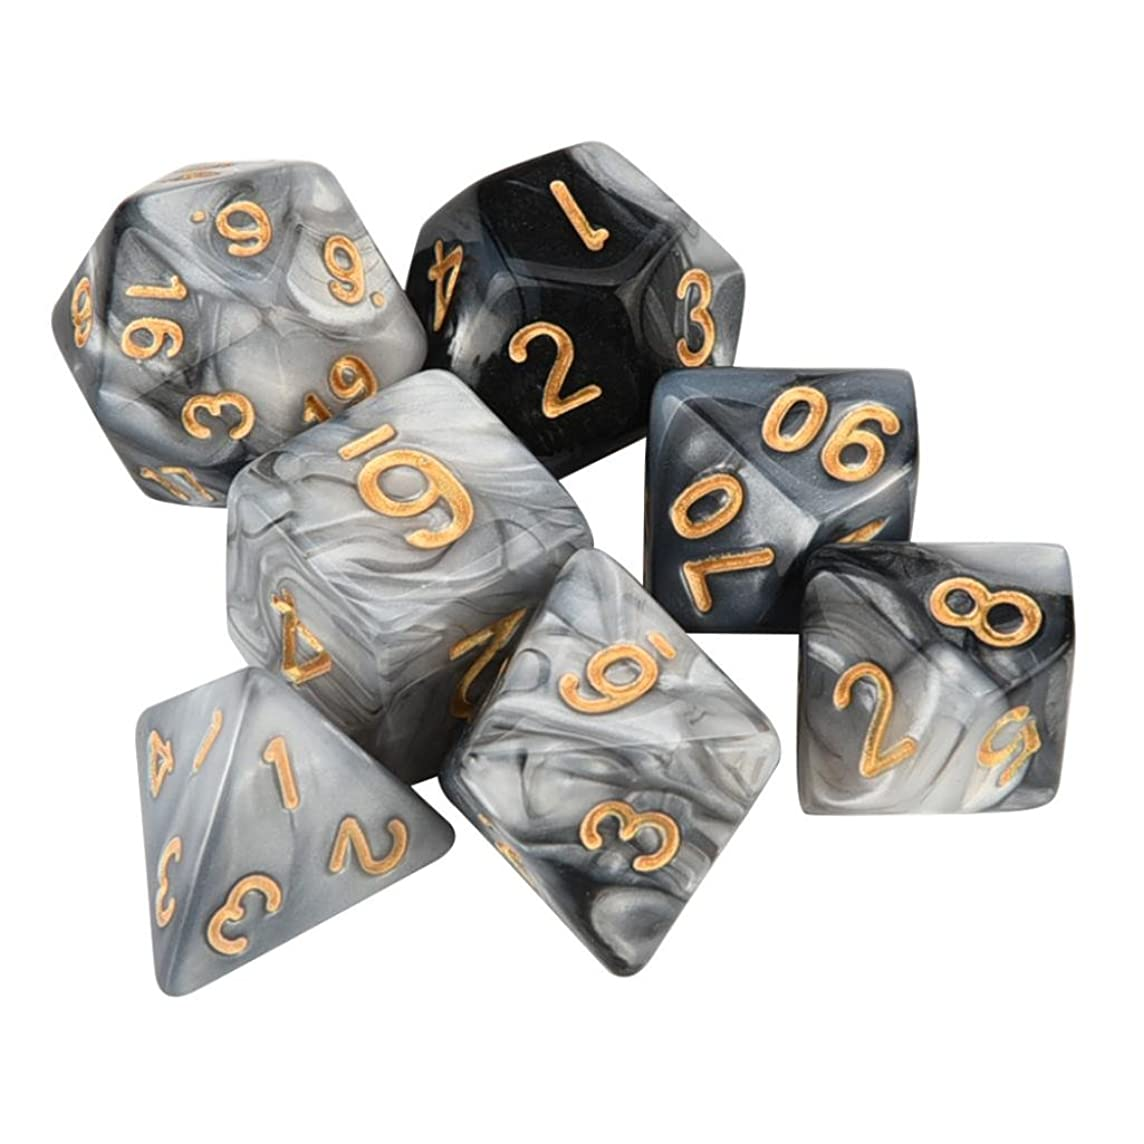 SUJING 7pcs/Set Multi-Color Dice Set, TRPG Game Dungeons & Dragons Polyhedral D4-D20 Multi Sided Acrylic Dice